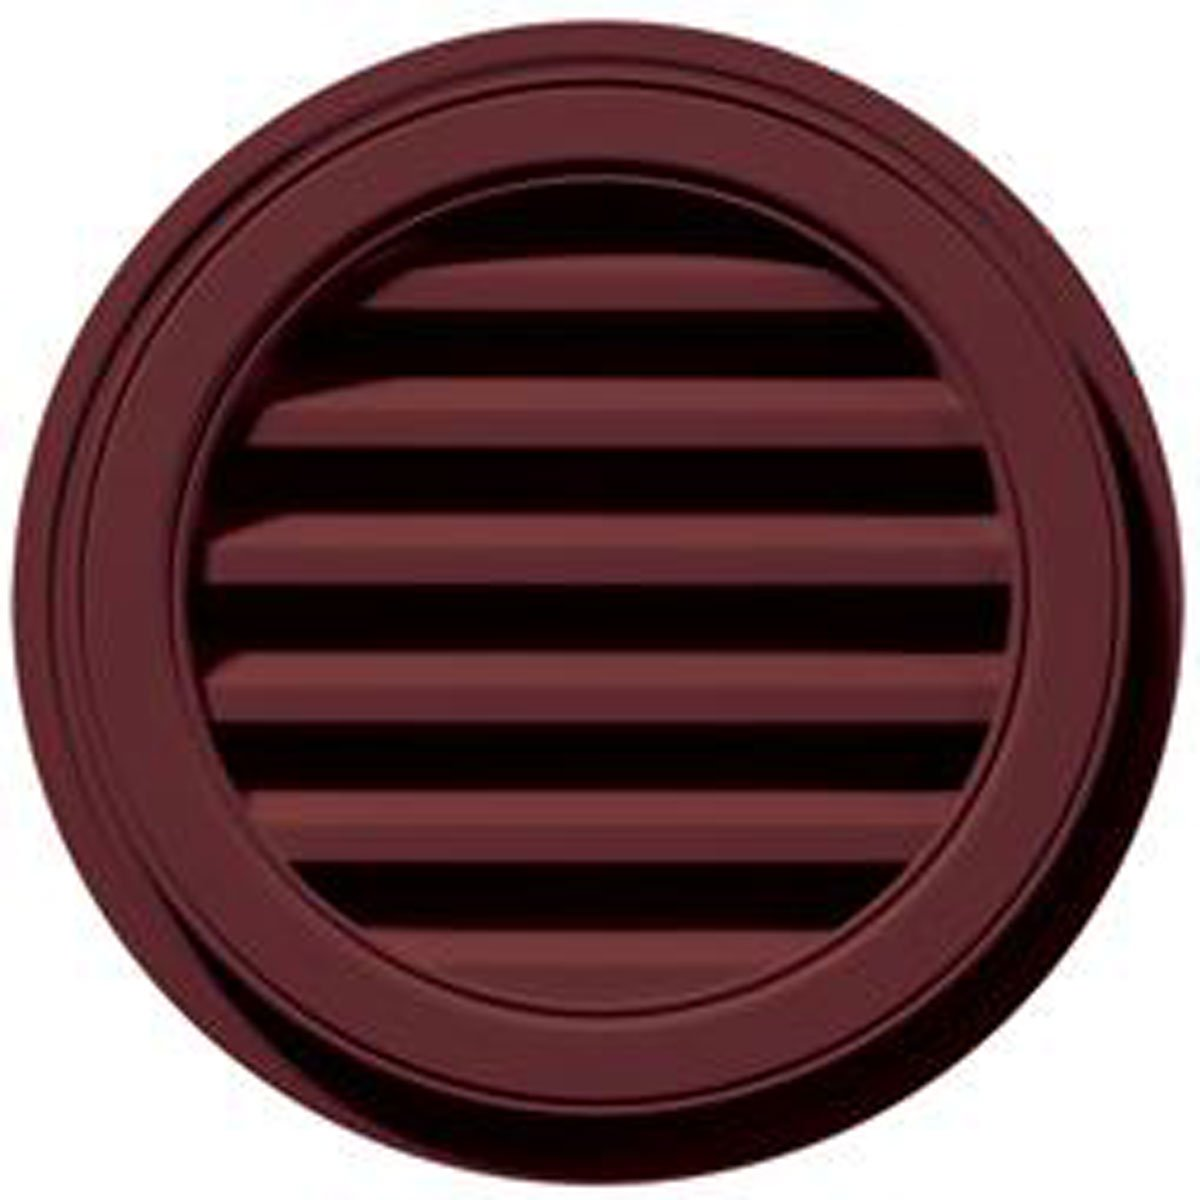 22'' W x 22'' H Round Gable Vent Louver, 50 Sq. Inch Vent Area, 078 - Wineberry